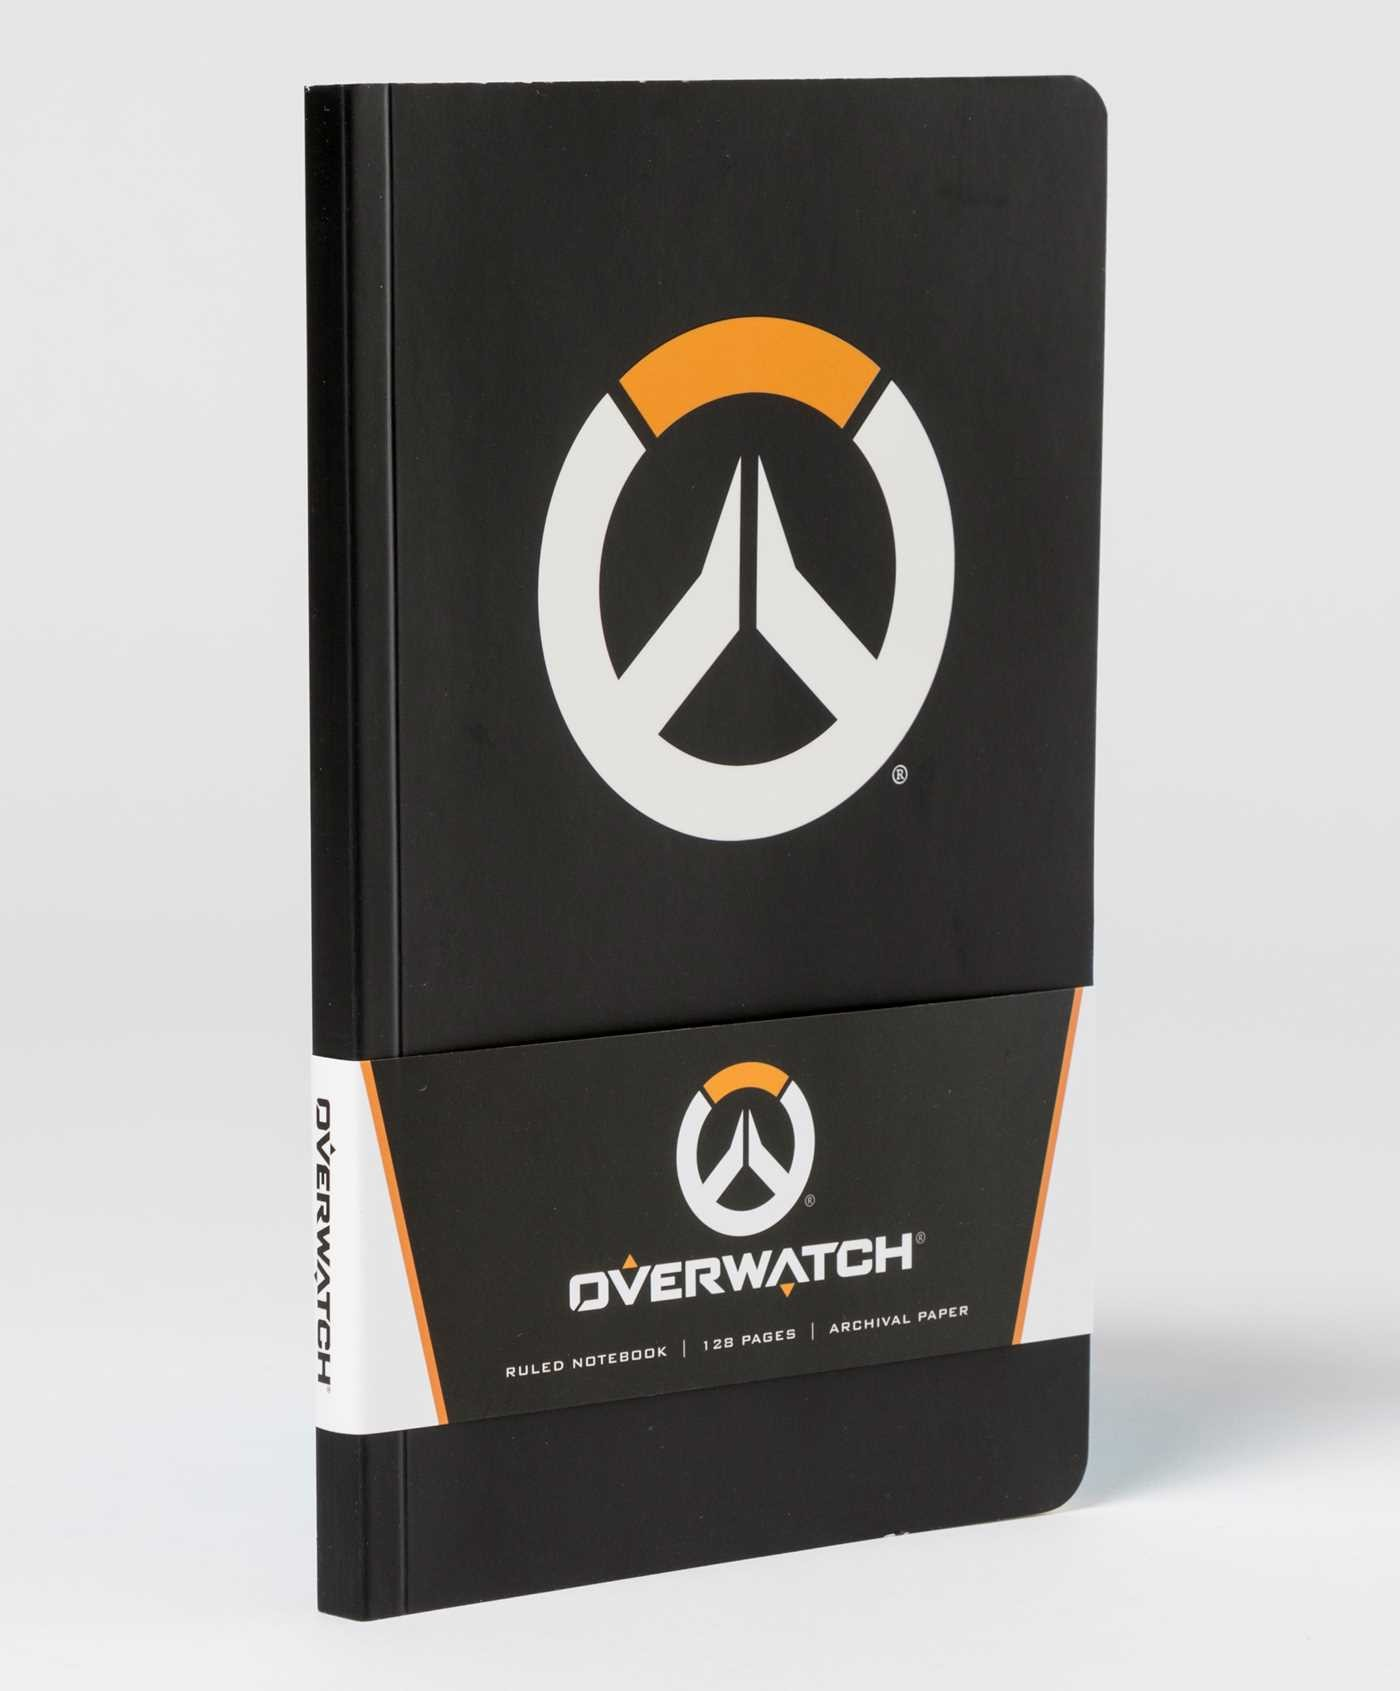 Overwatch ruled notebook 9781683832669.in03